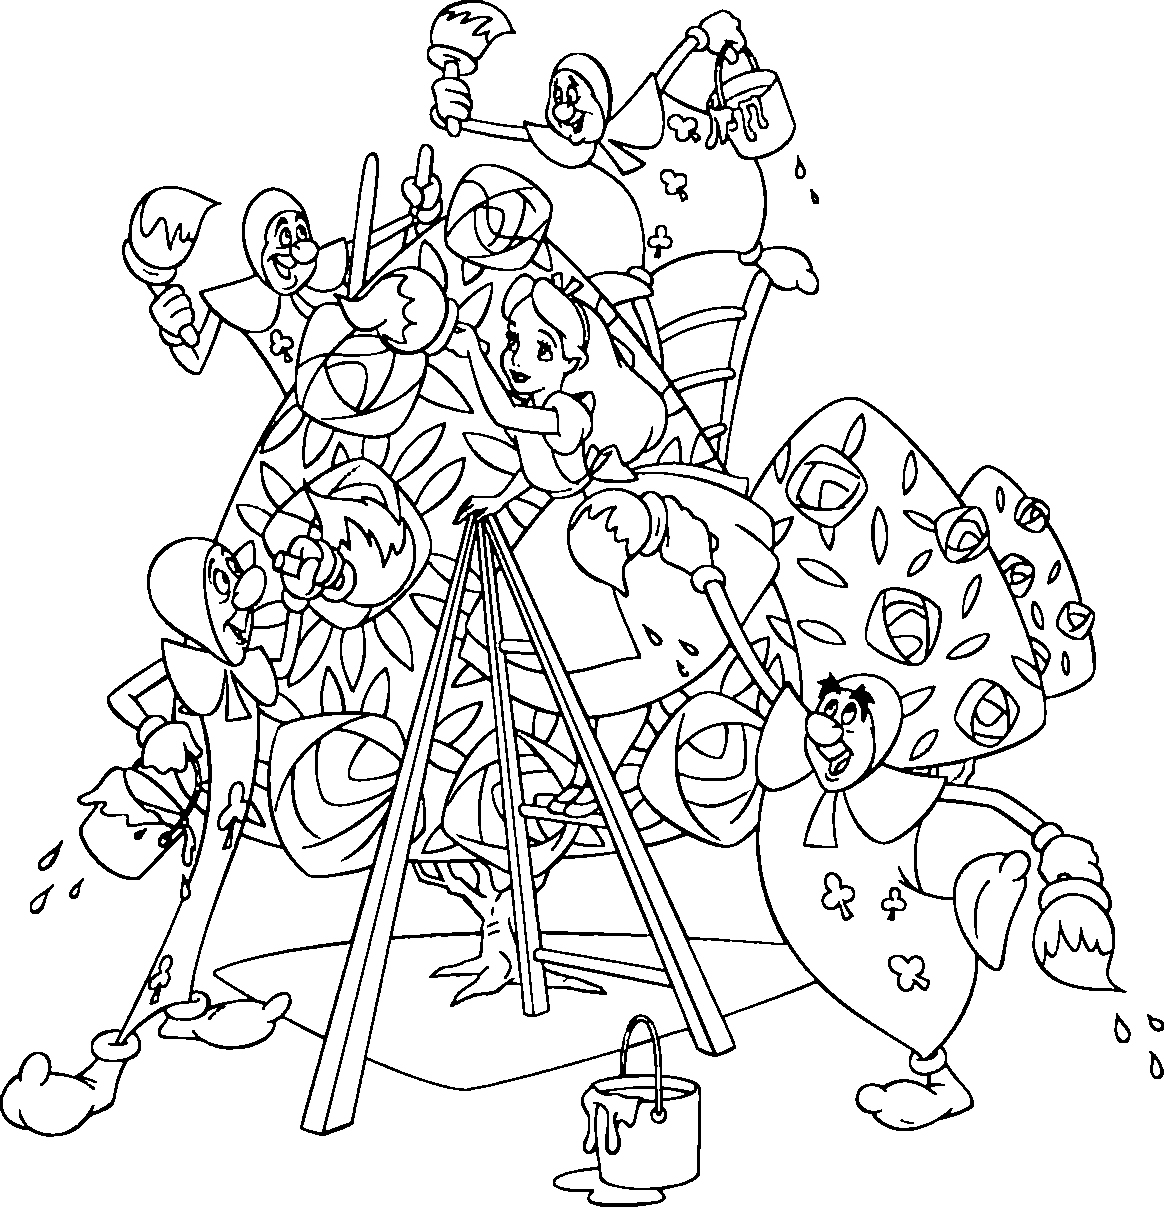 alice in wonderland coloring page - Alice Wonderland Coloring Page